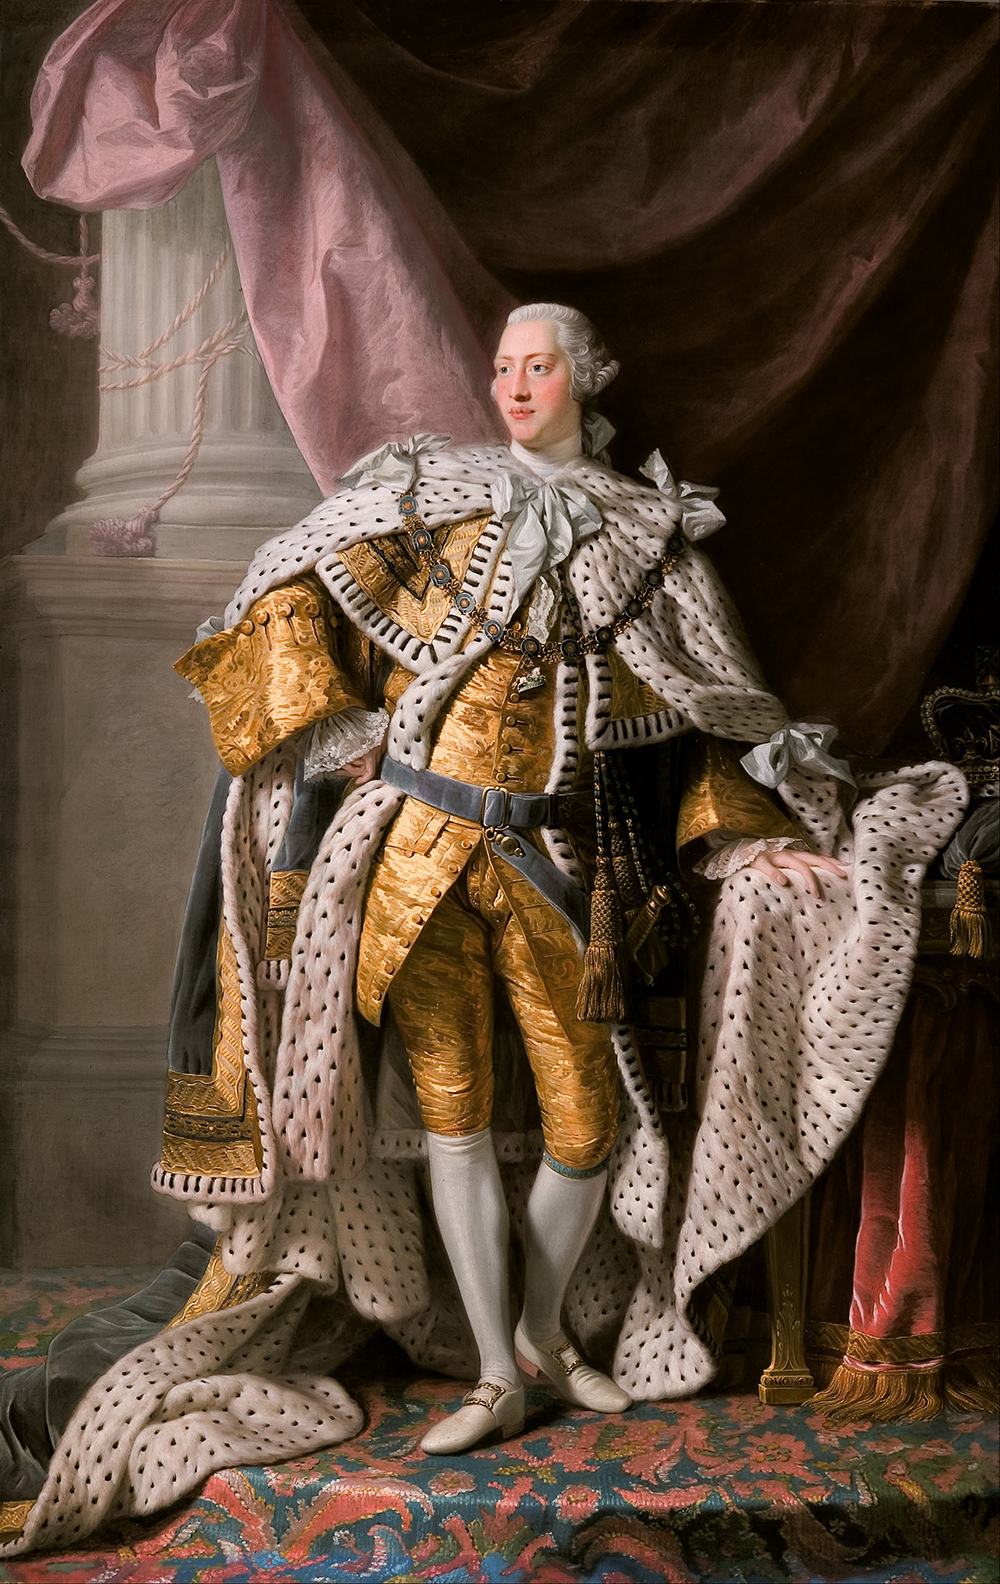 King George III in coronation robes, by Allan Ramsay, c. 1765. Wikimedia Commons, Art Gallery of South Australia.